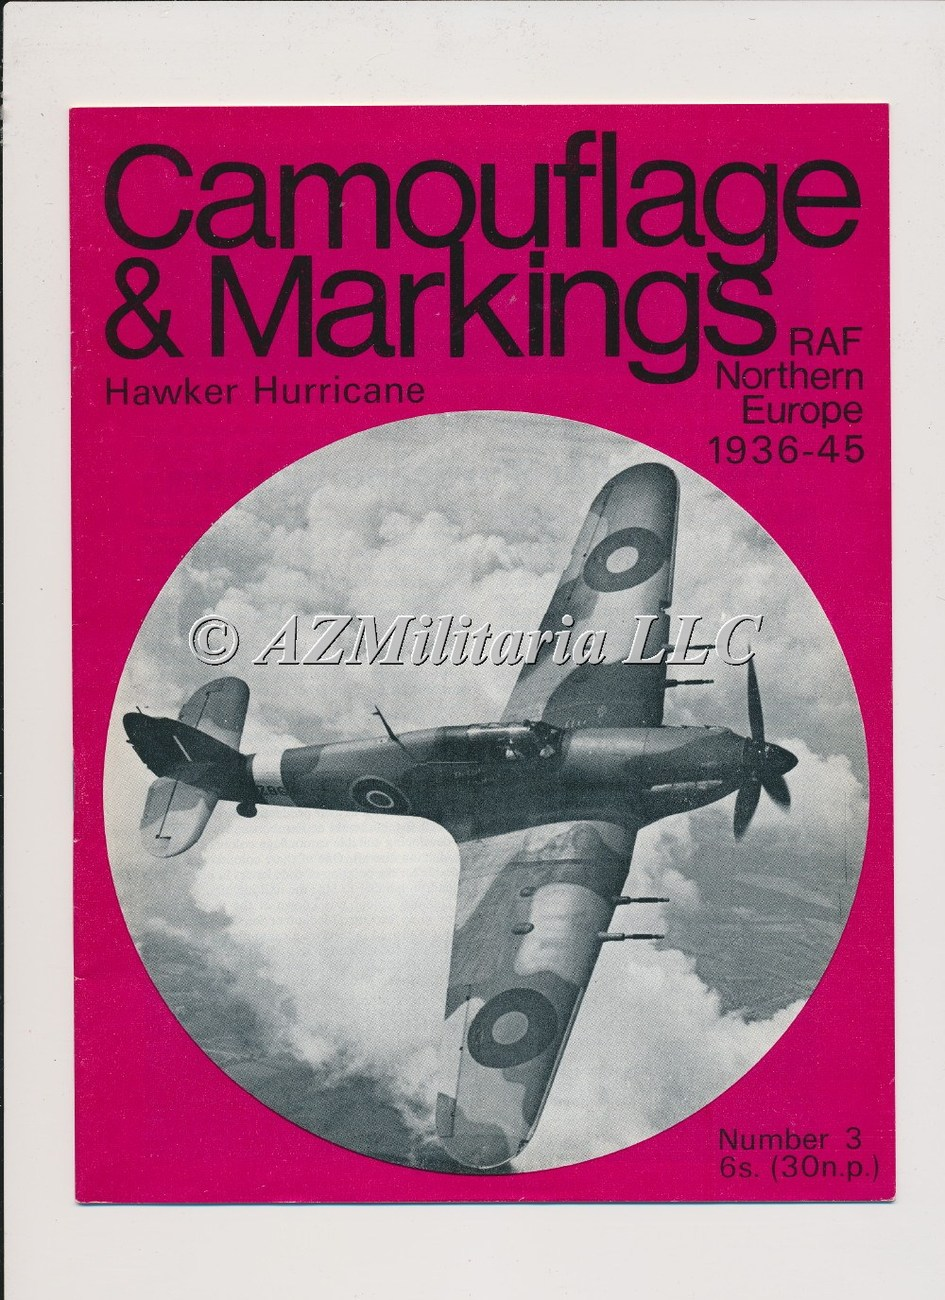 Camouflage & Markings Hawker Tornado Typhoon & Tempest  RAF Northern Europe 1936